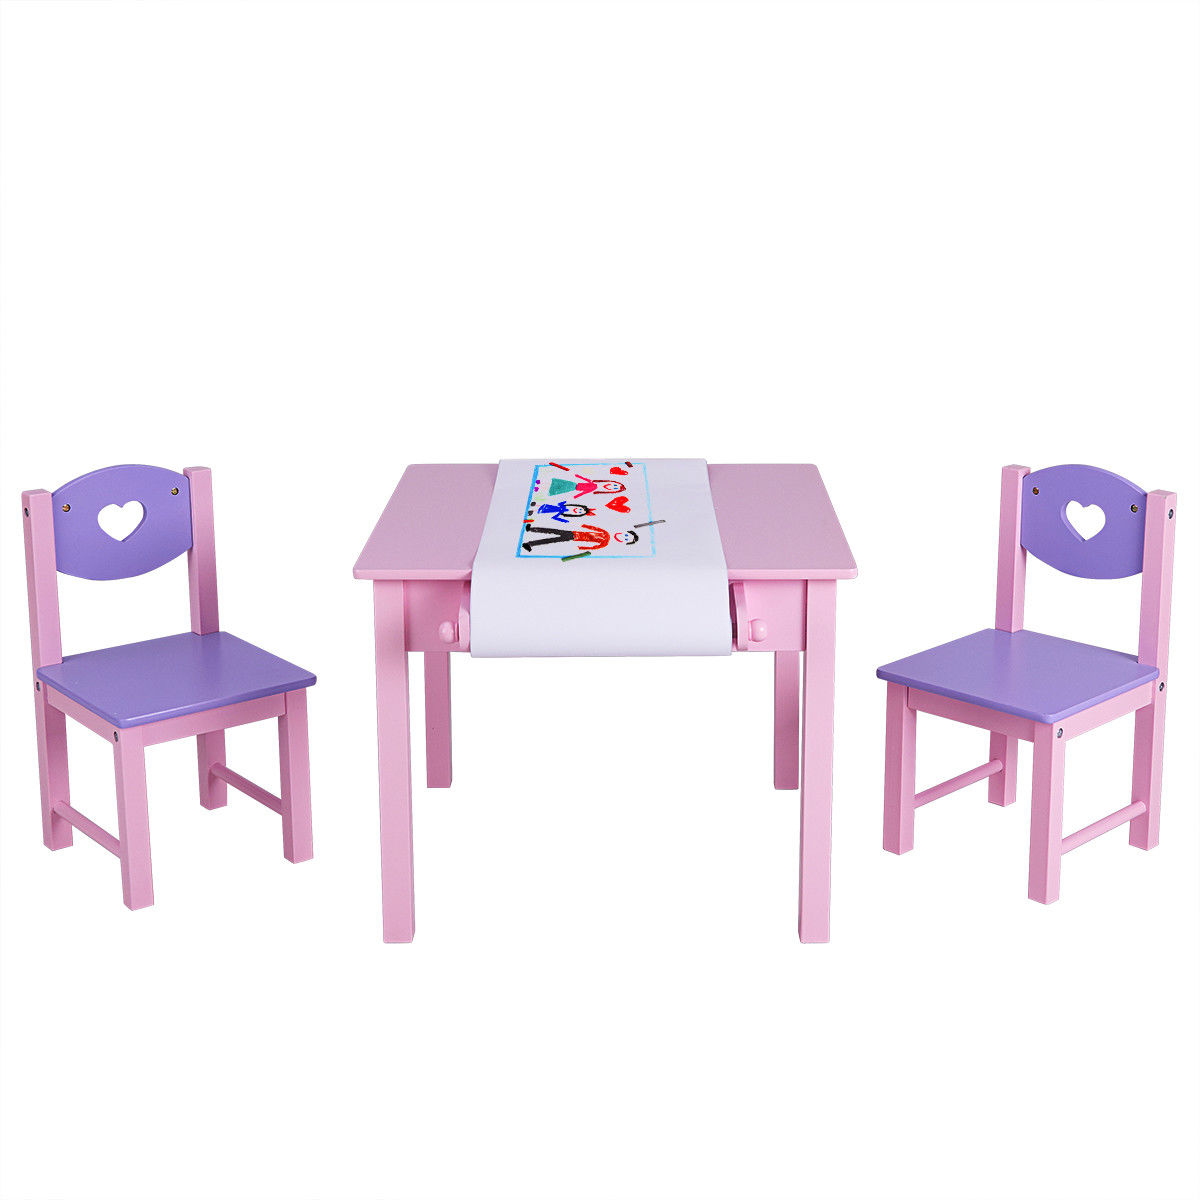 Costway Kids Art Table And 2 Chairs Set With Paper Roll Rack & 2 Drawers For Painting